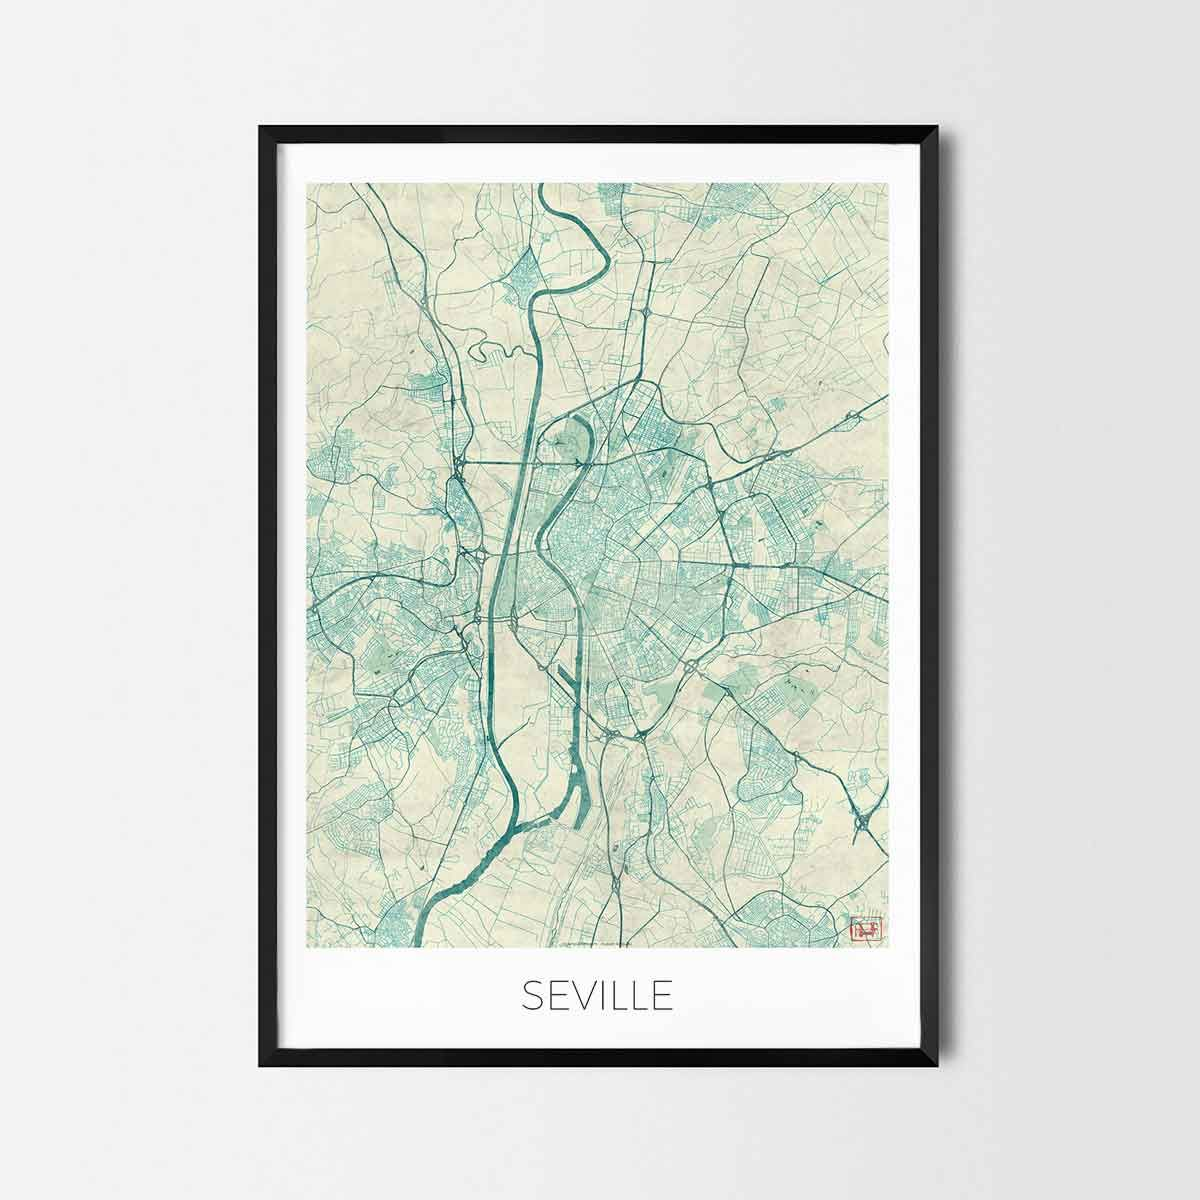 Seville art posters city art map posters and prints cool houses